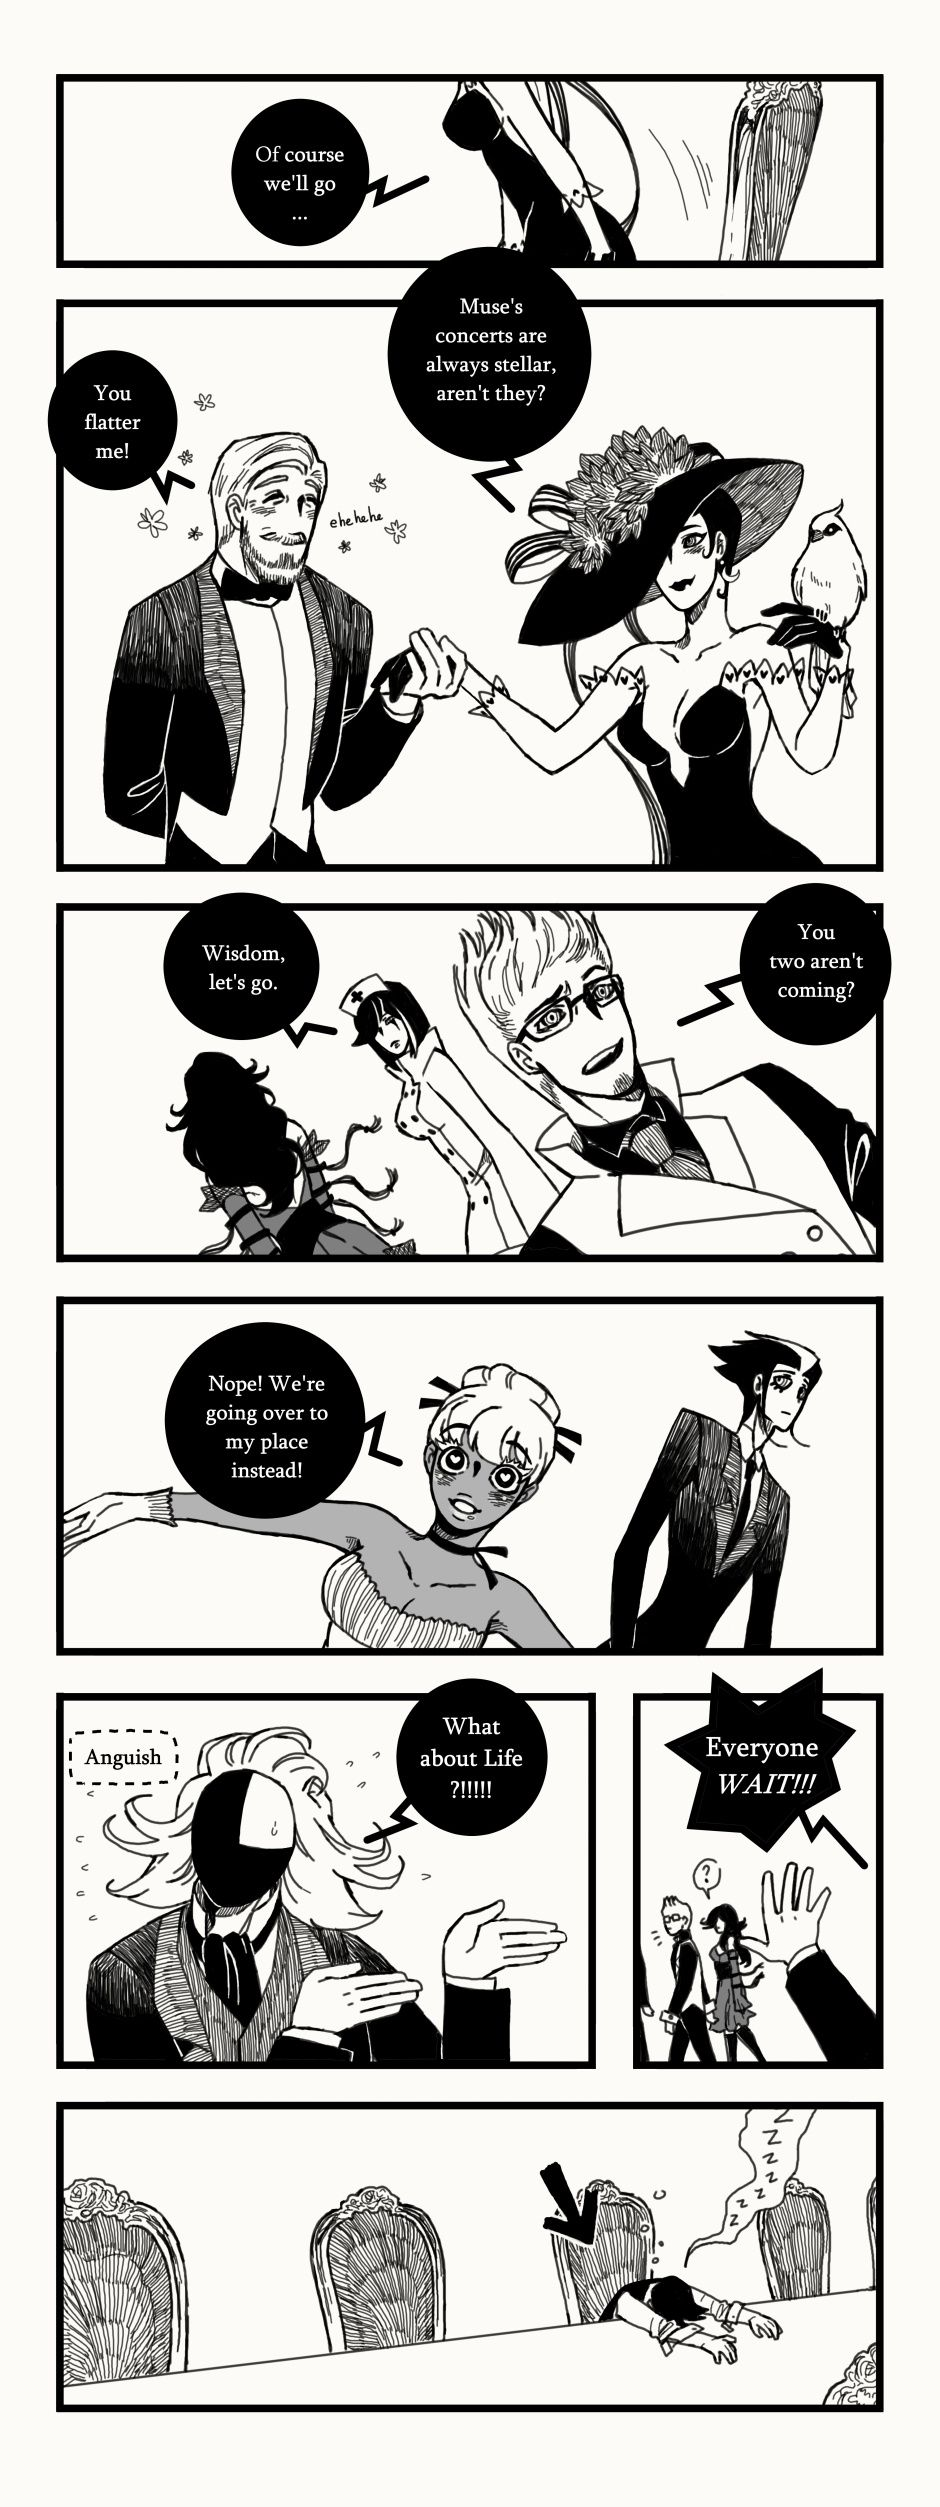 A Matter of Life and Death :: Understand Me - 11 | Tapastic Comics - image 1